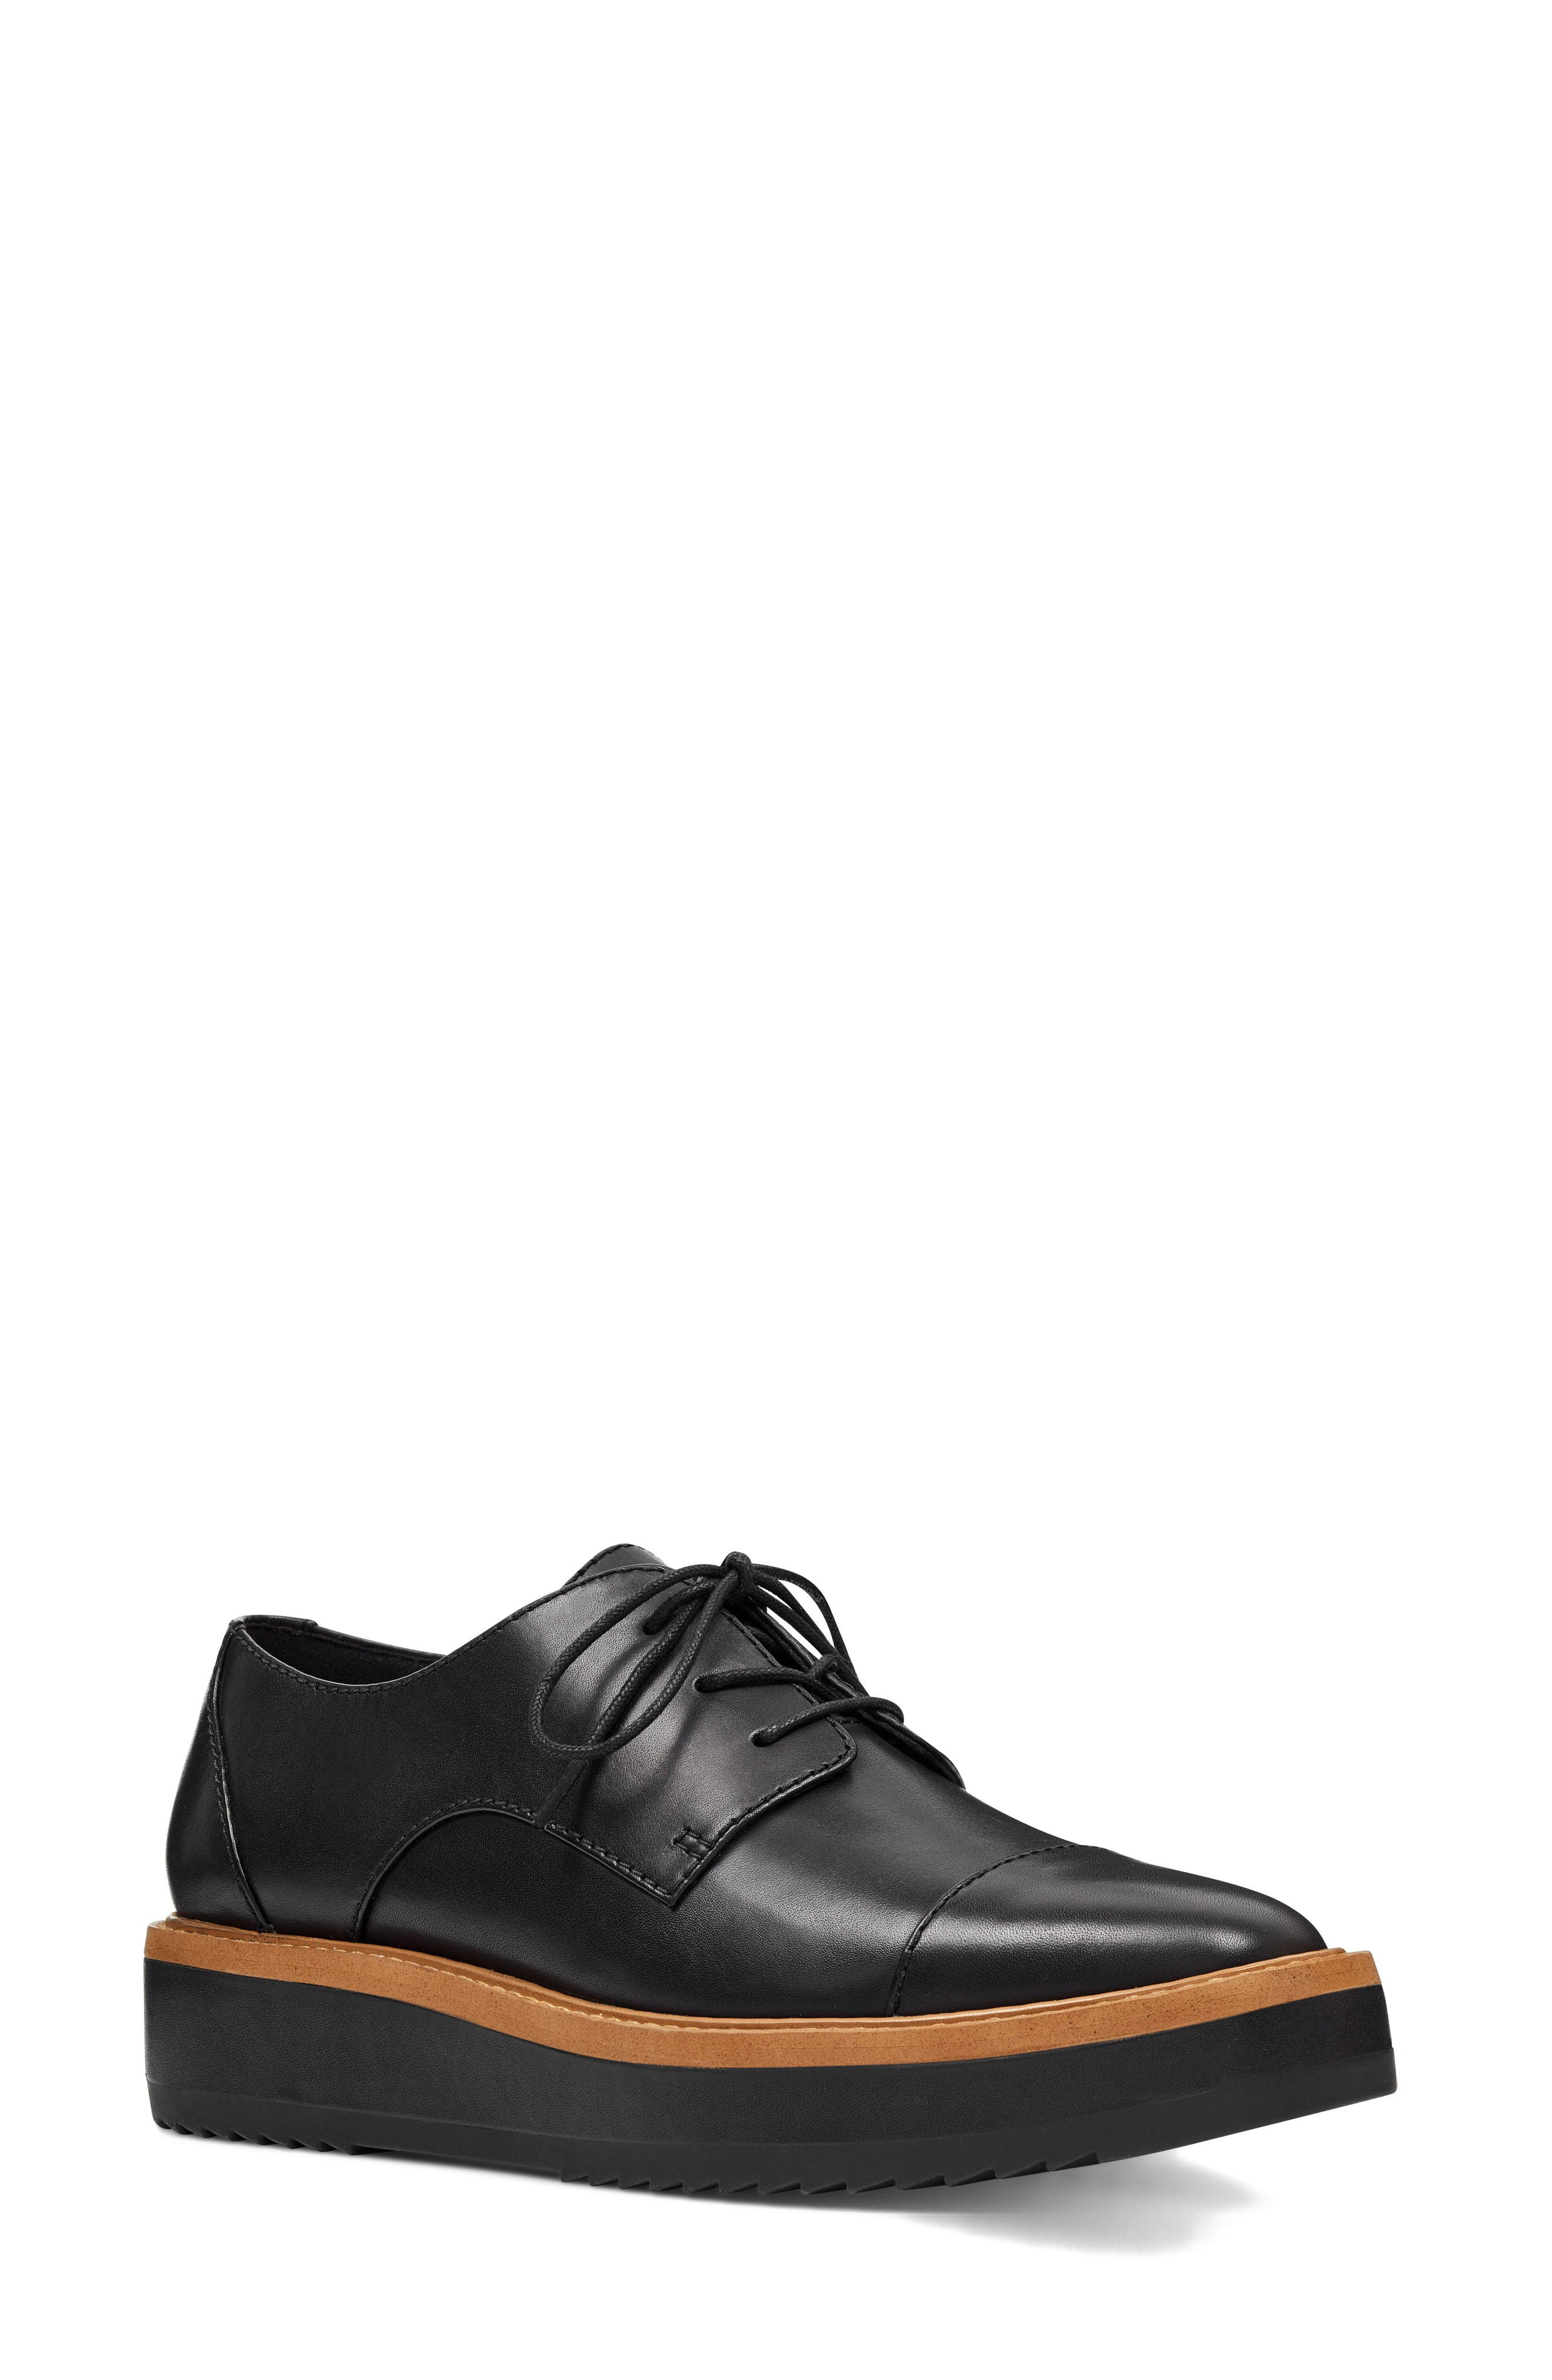 Vada Oxford,                         Main,                         color, BLACK LEATHER